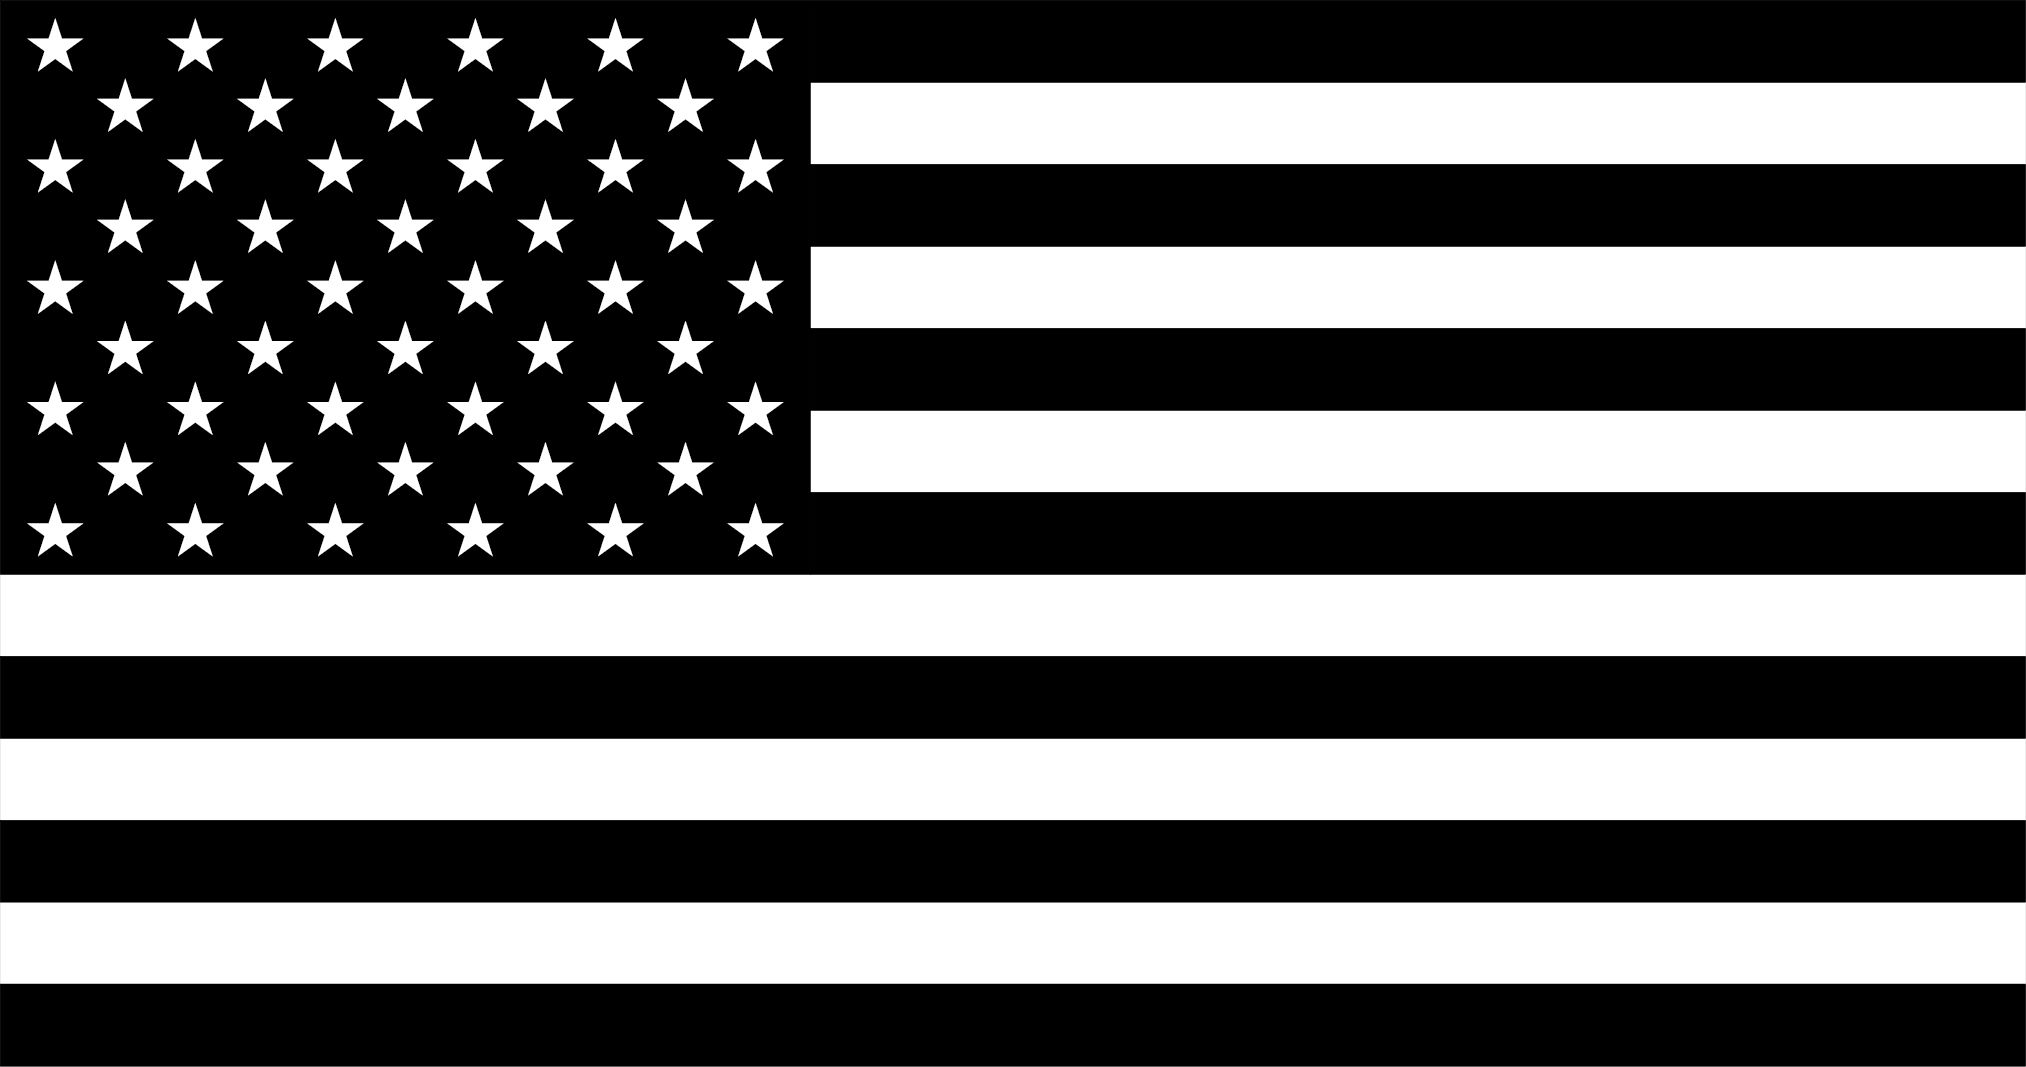 2026x1067 Black And White American FlagWORLD Of FLAGS | WORLD Of FLAGS